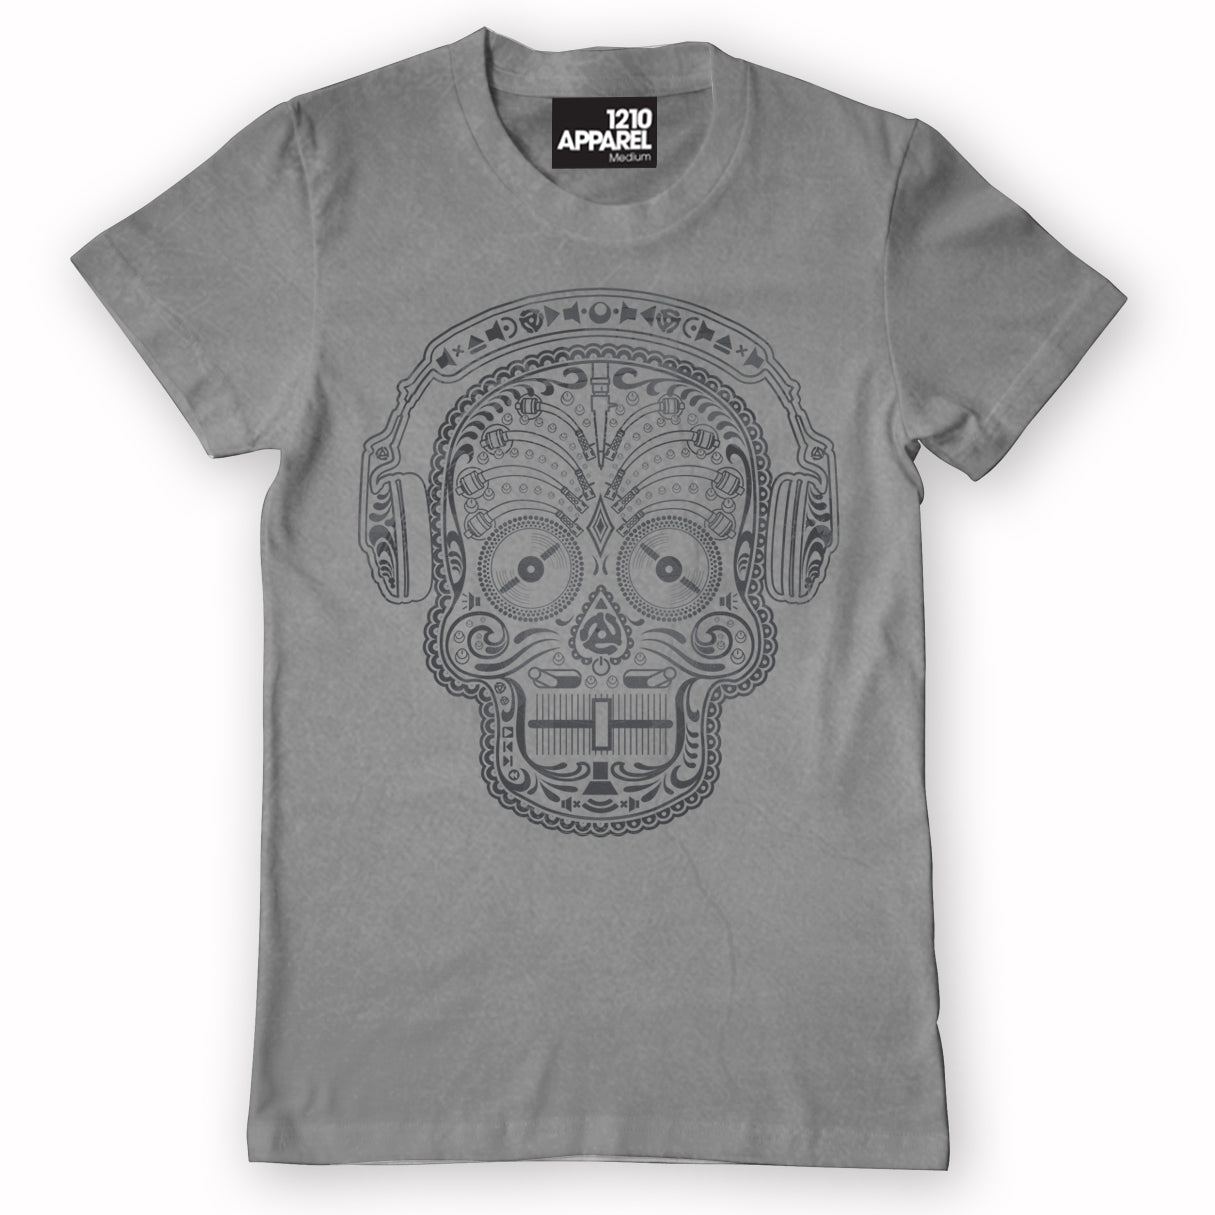 Check Out Skull & Phones DJ T-shirt in Grey On The DMC Store